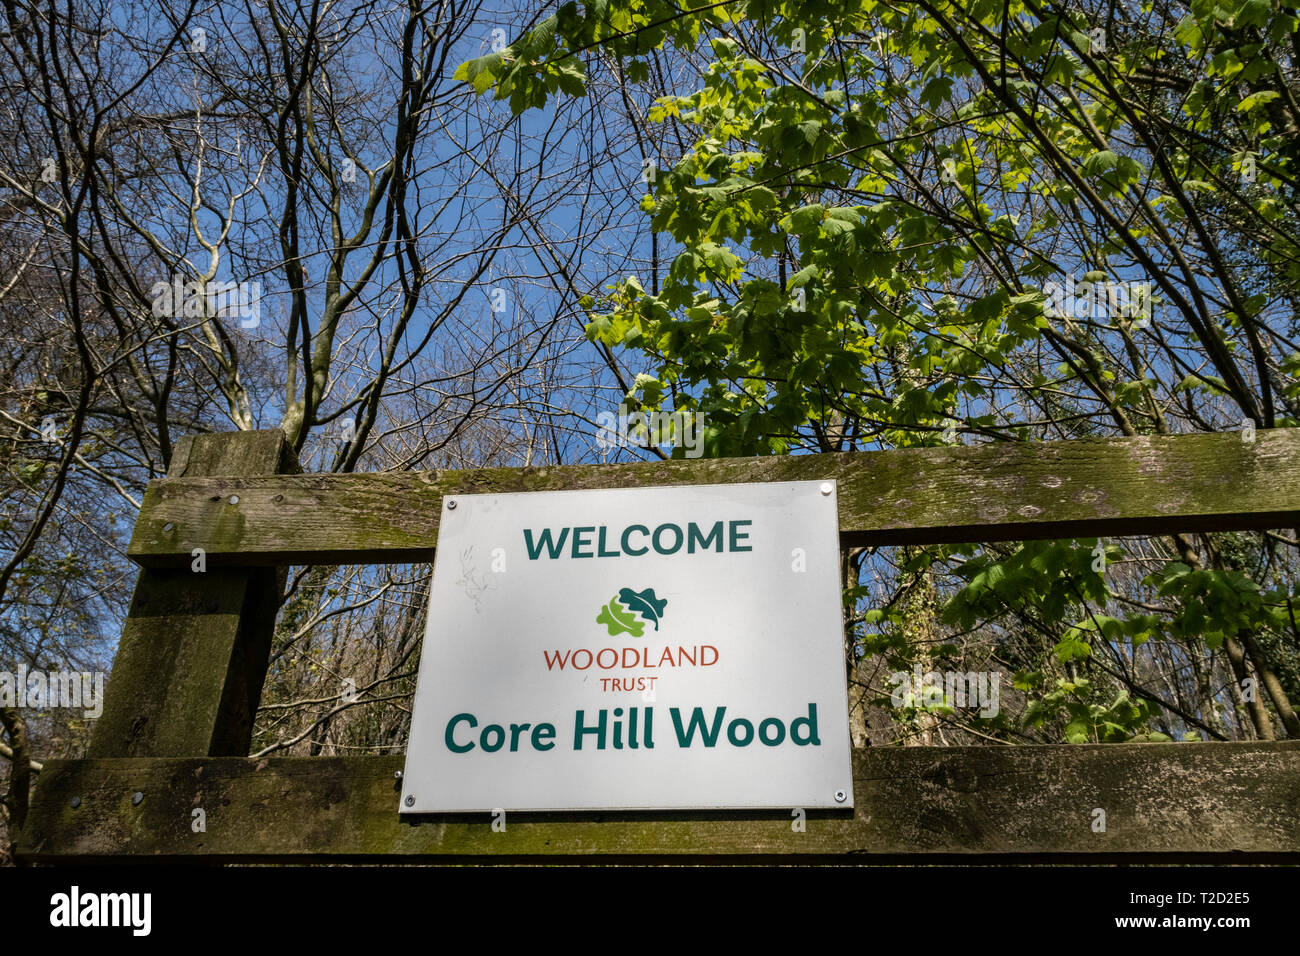 Core Hill Wood, above Sidmouth, Devon, part of the Woodland Trust, with footpaths and good walk walking. - Stock Image